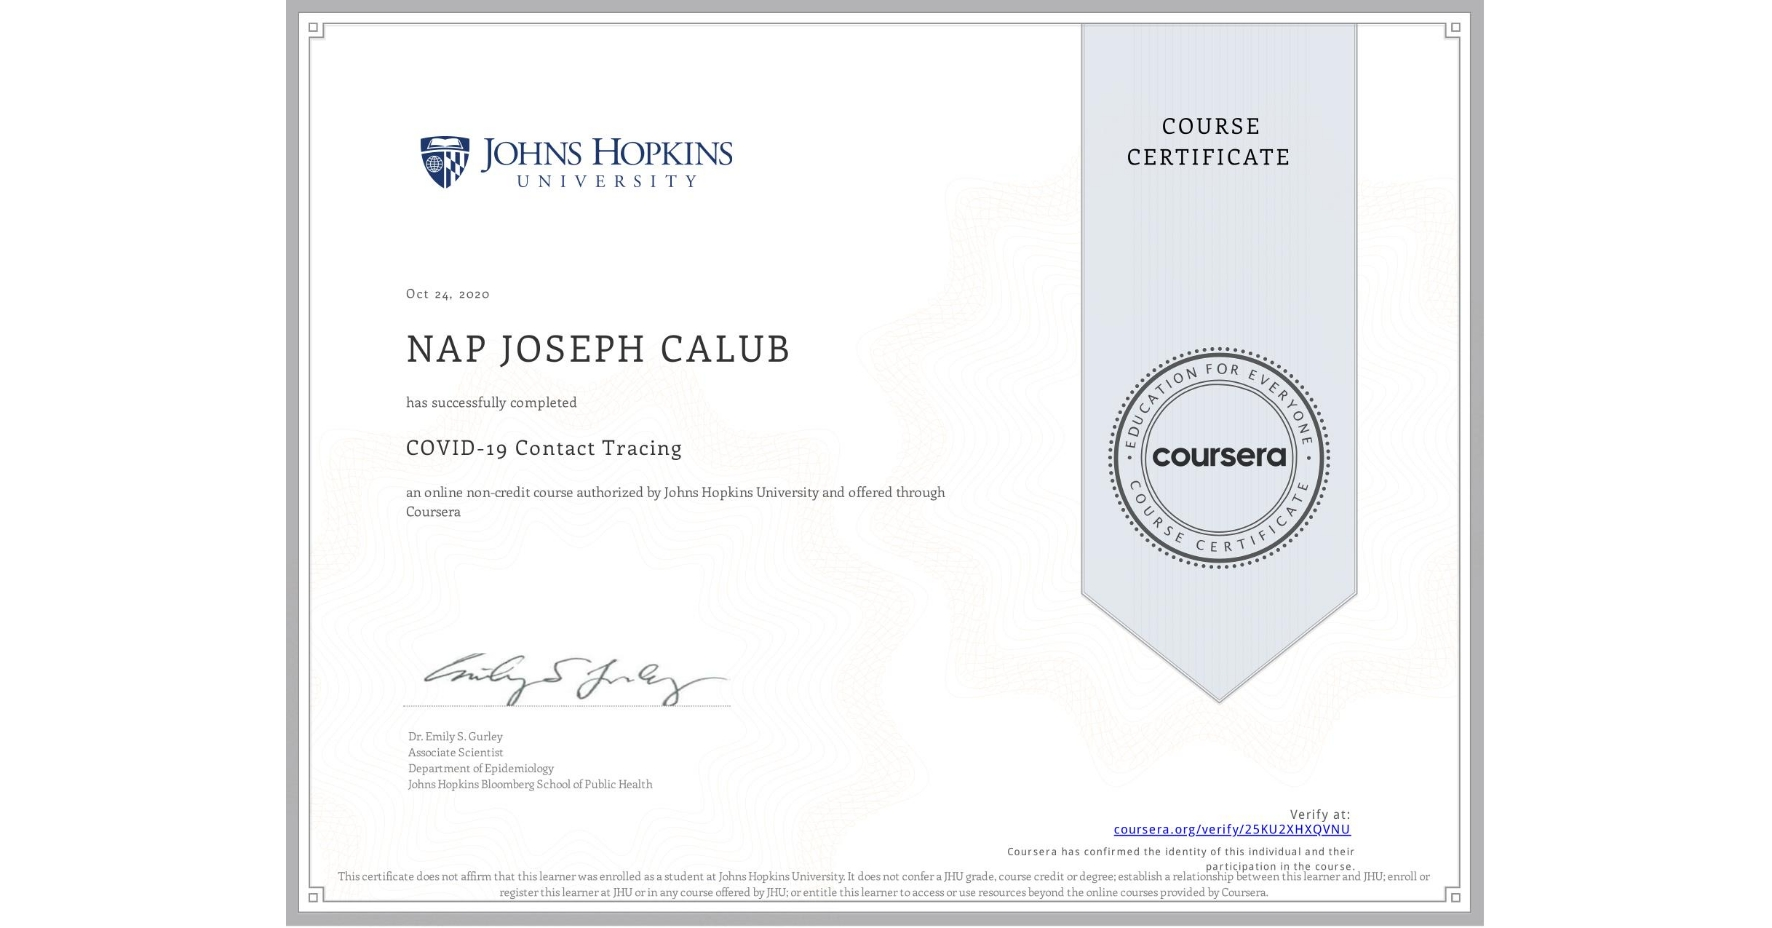 View certificate for NAP JOSEPH  CALUB, COVID-19 Contact Tracing, an online non-credit course authorized by Johns Hopkins University and offered through Coursera